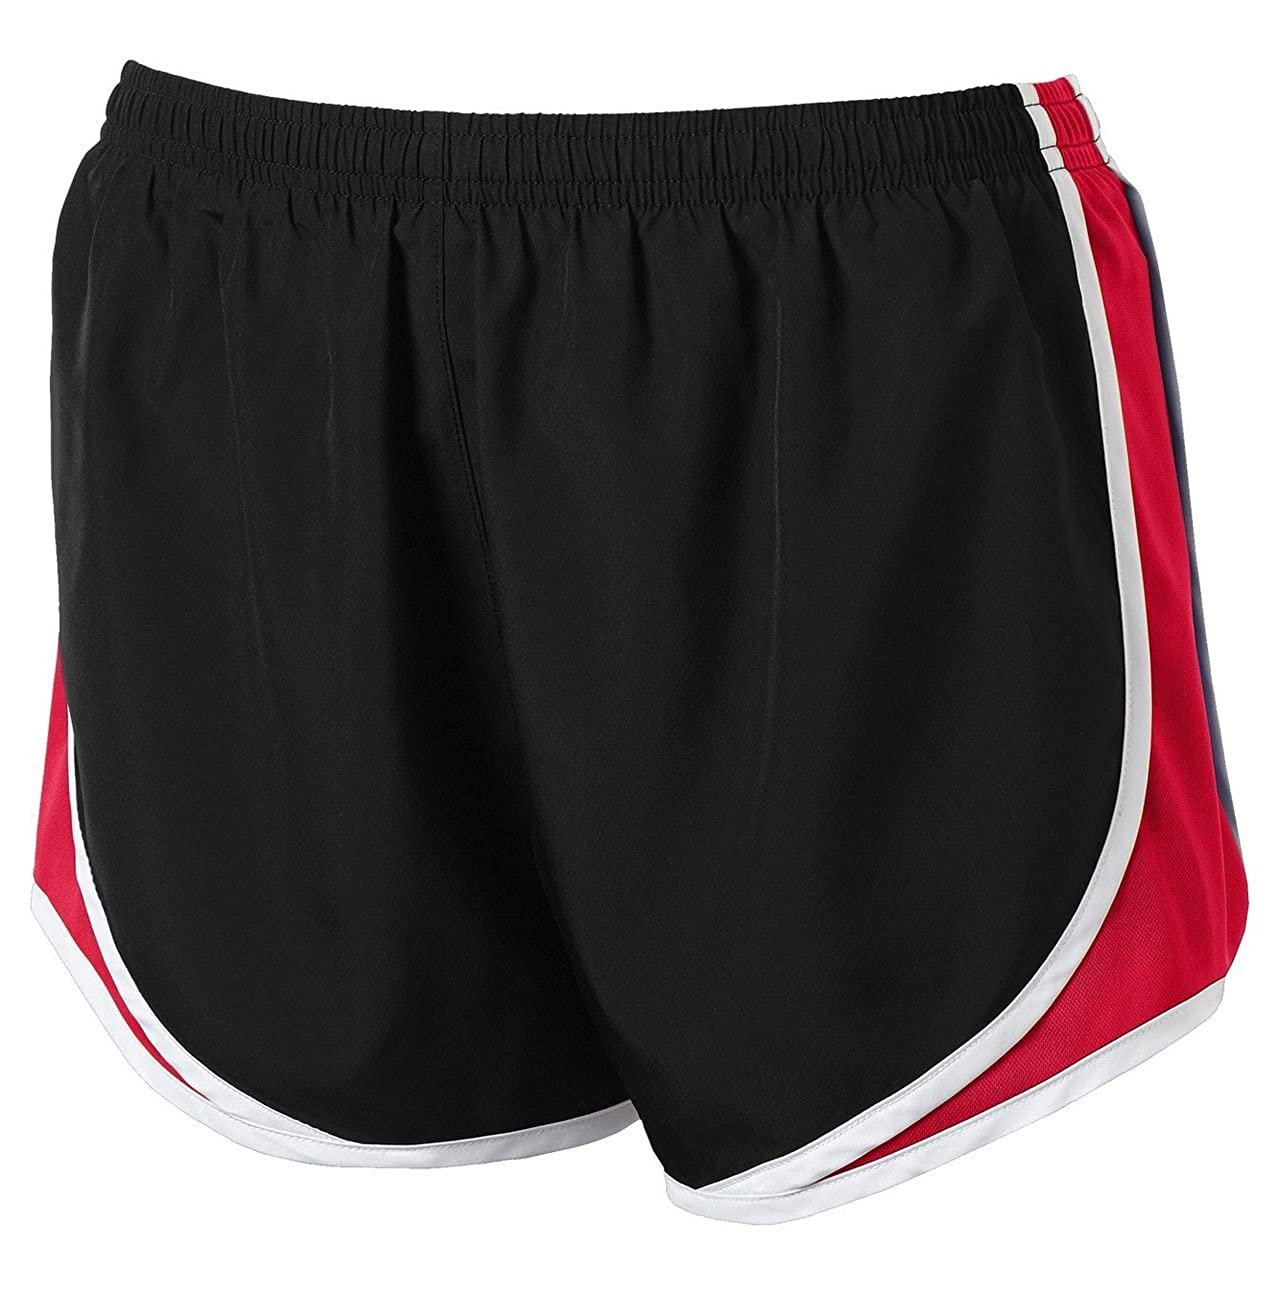 Ladies Moisture Wicking Sport Track Field Running Shorts Clothe Co